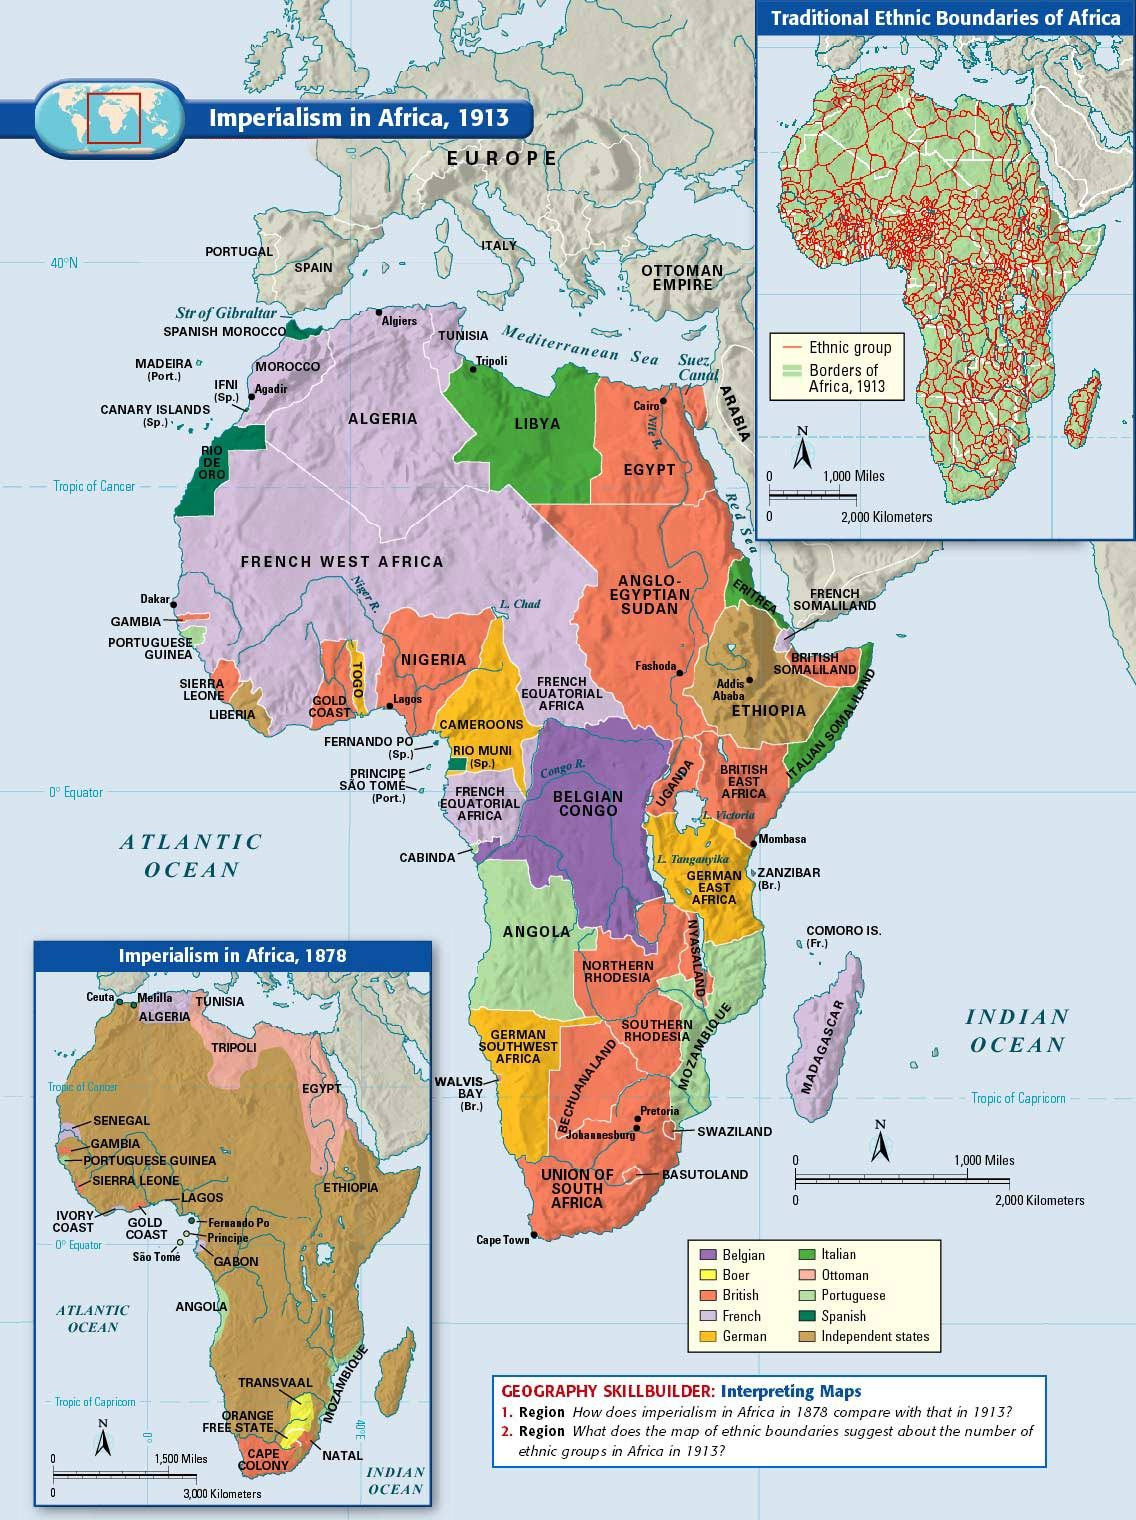 Imperialism in Africa, 1913 | History | Pinterest | Africa map ...